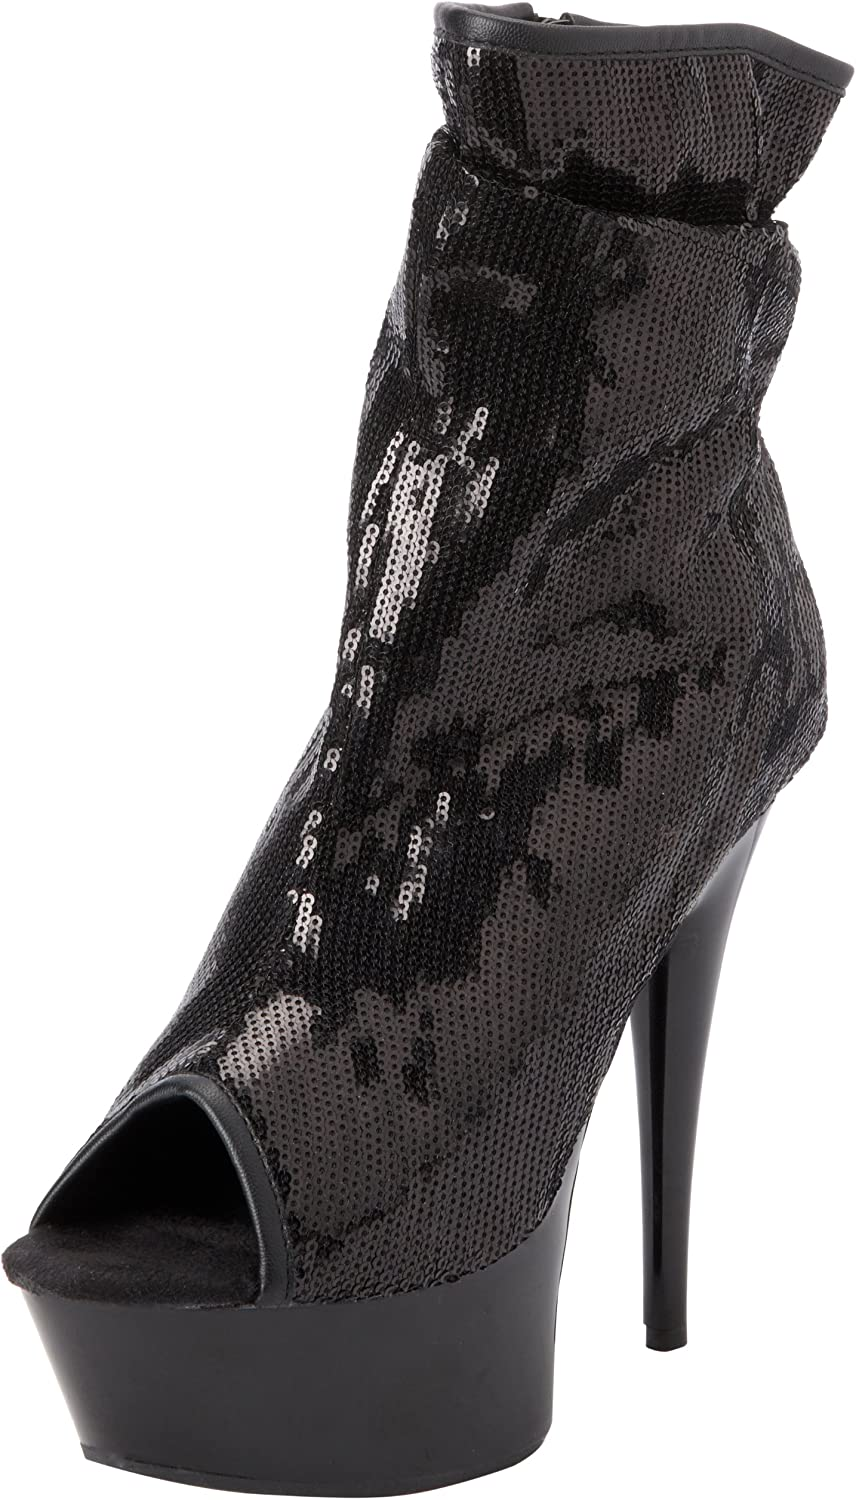 The Highest Heel Womens Amber-411 Bootie